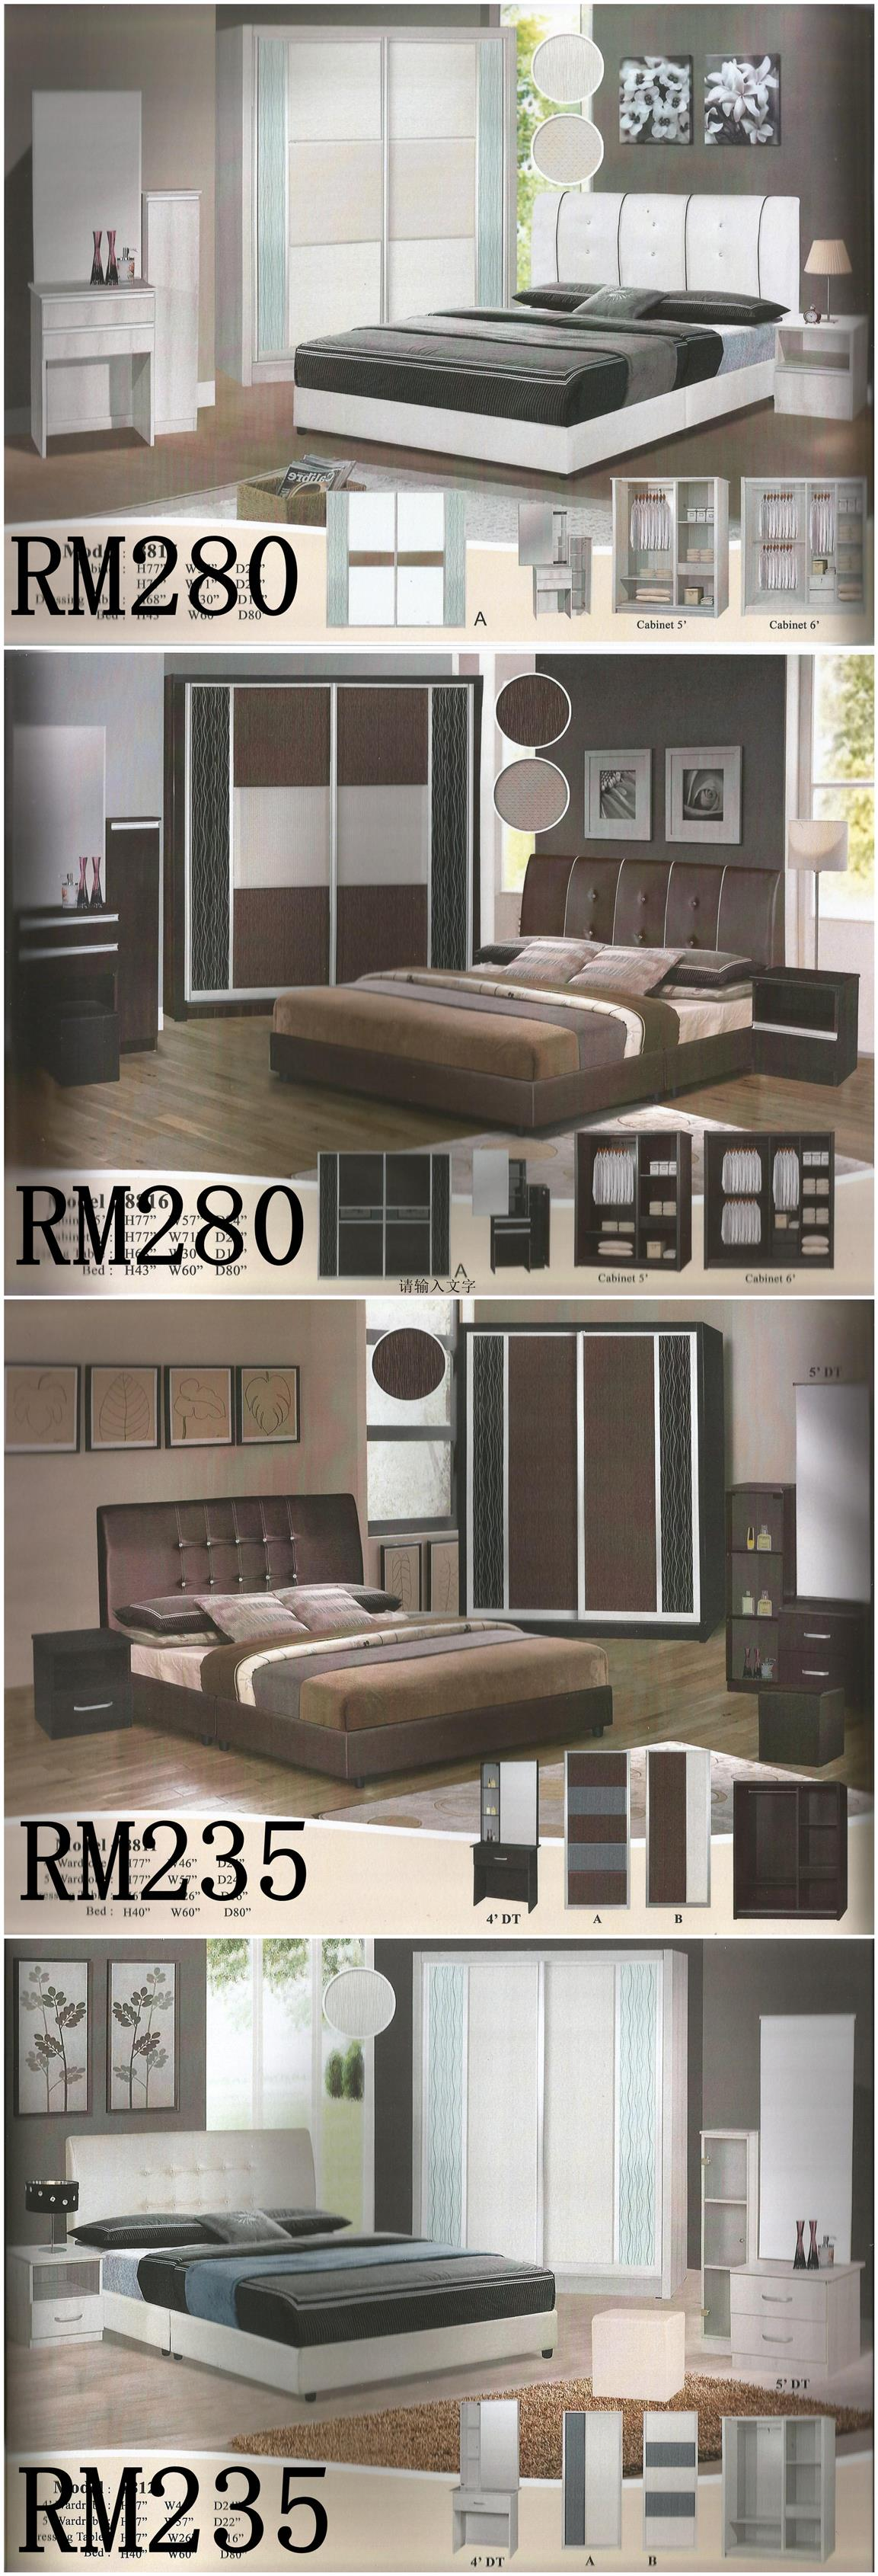 LUXURY SET (BEDROOM SET INCLUDING MATTRESS) LOW PRICE INSTALLMENT PLAN